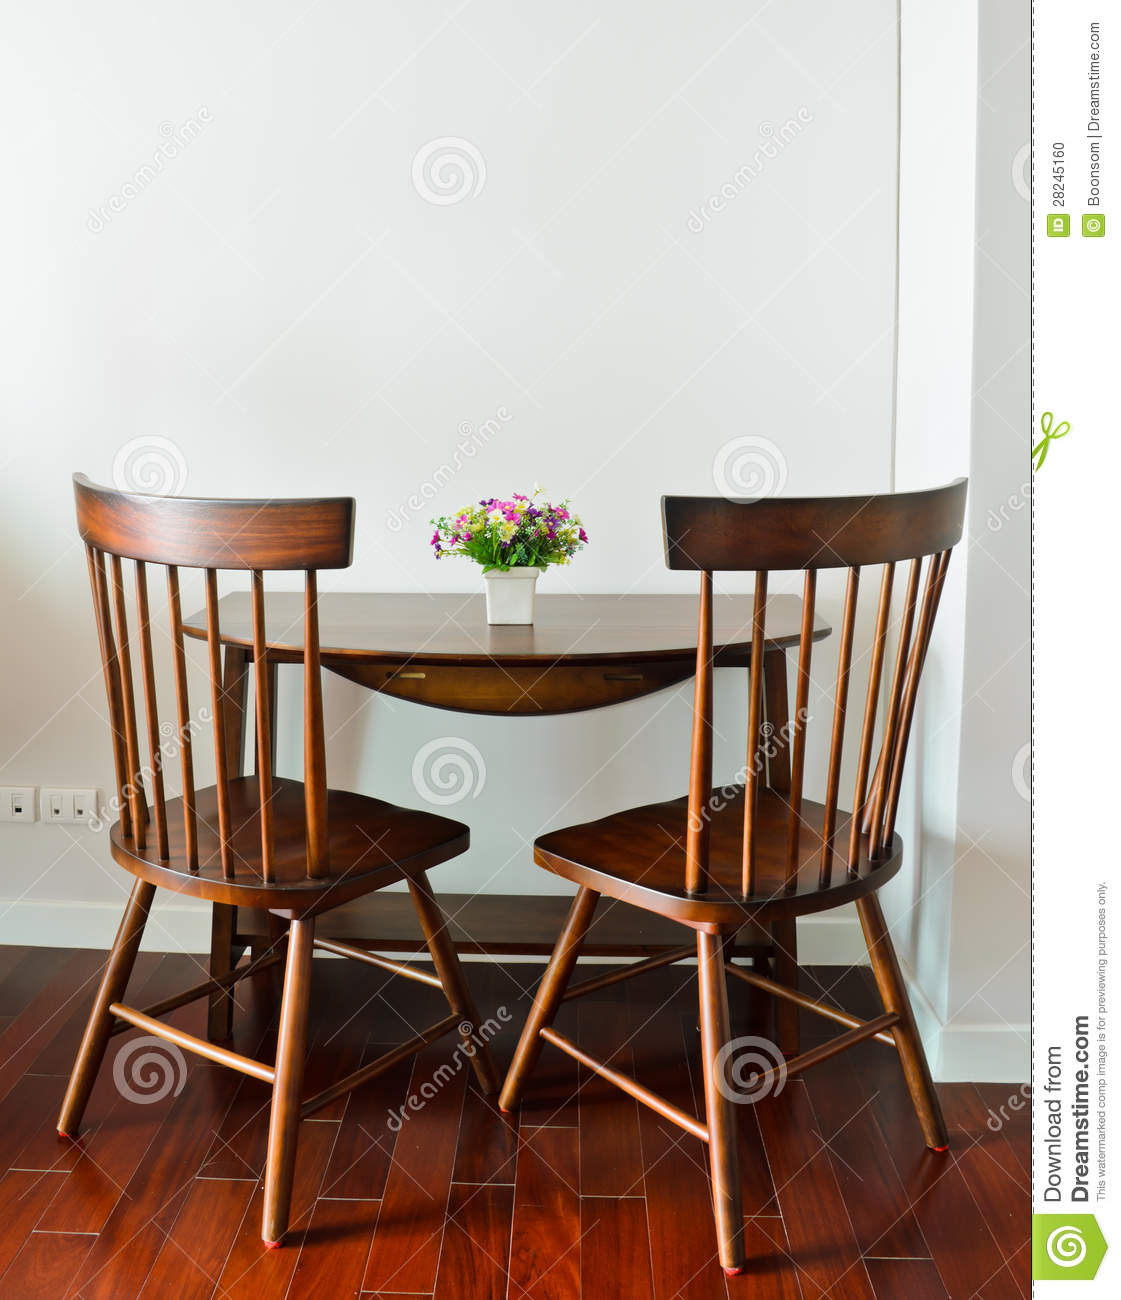 petite table a manger maison design. Black Bedroom Furniture Sets. Home Design Ideas